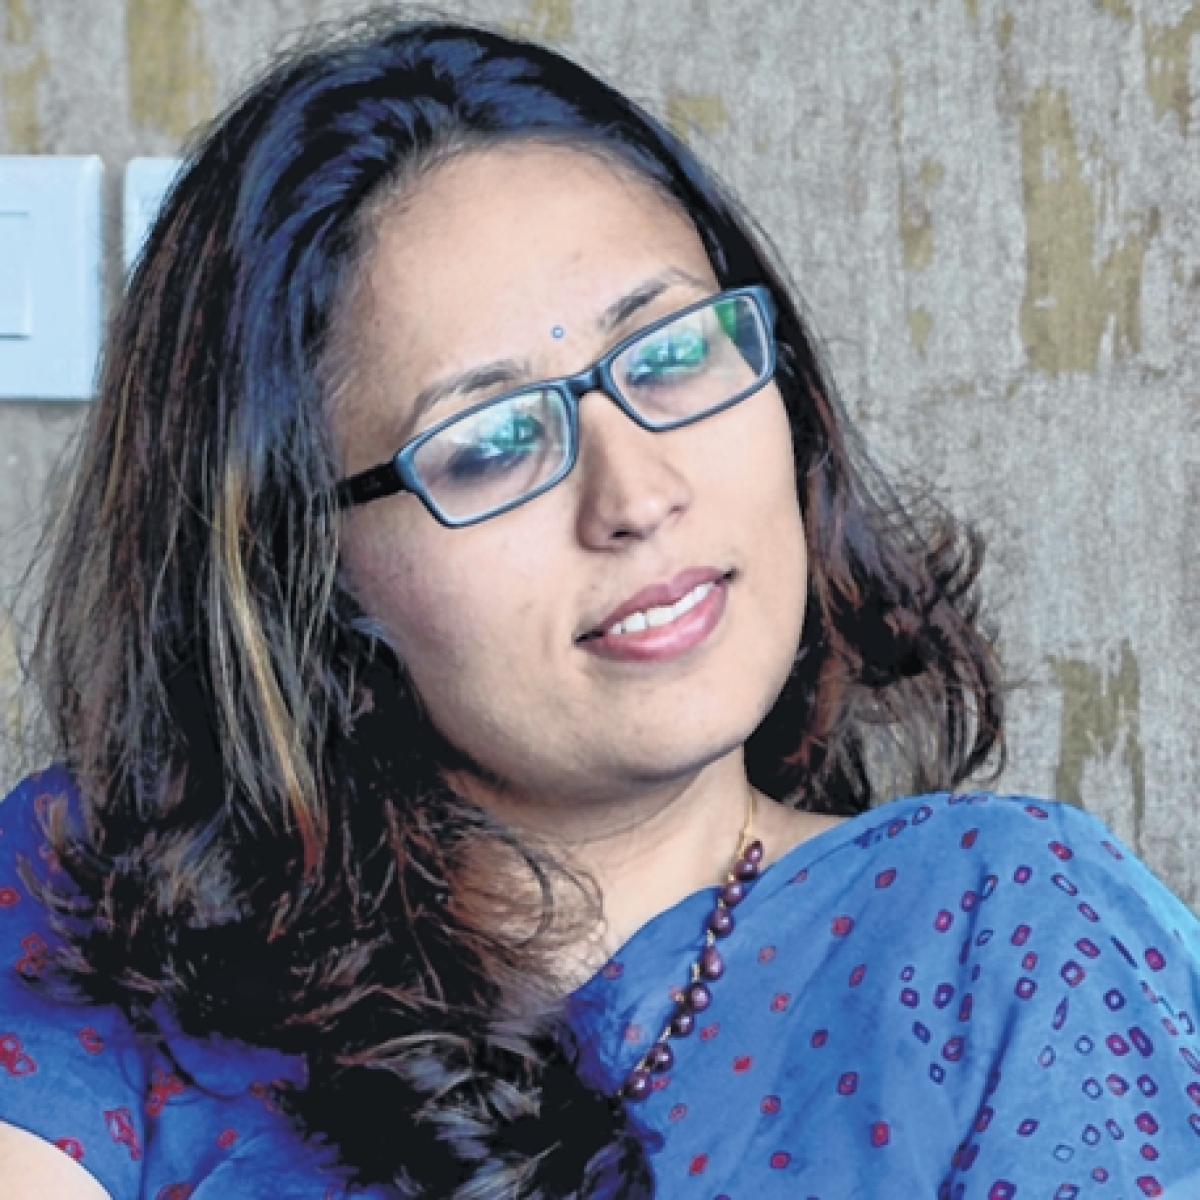 Miles travelled, yet more to go: Edelweiss Asset Management CEO Radhika Gupta